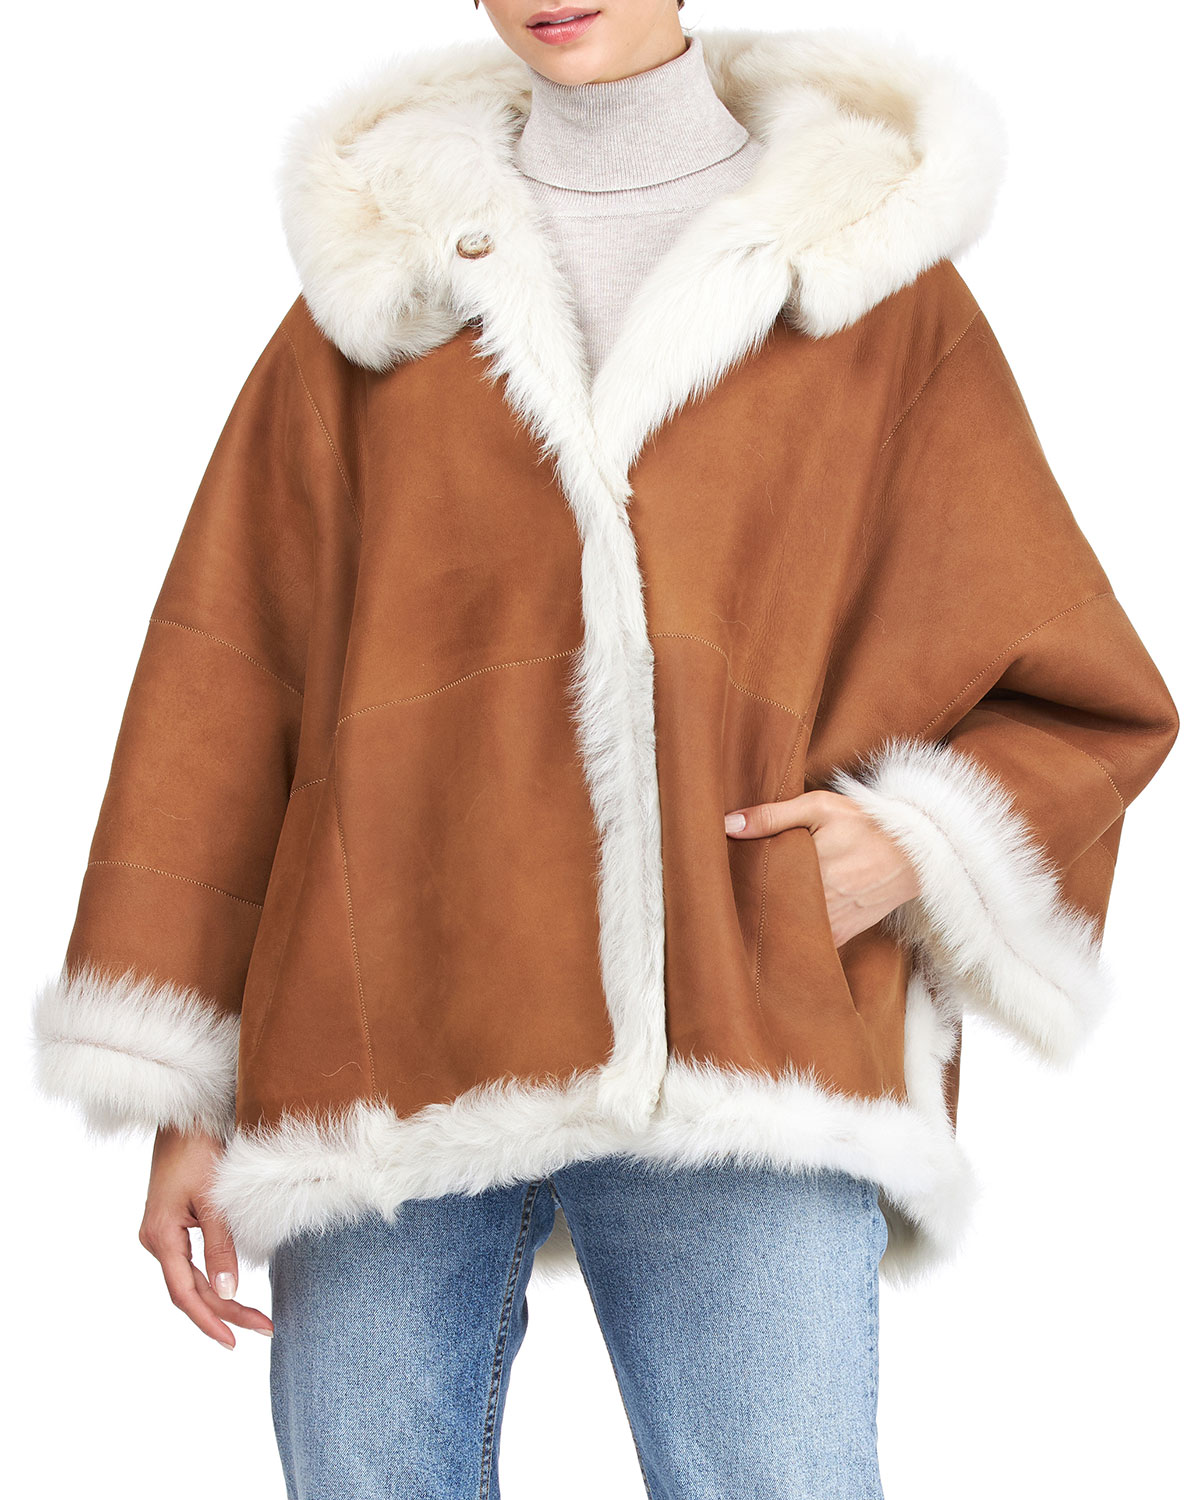 Reversible Shearling Lamb Hooded Jacket with Cropped Sleeves